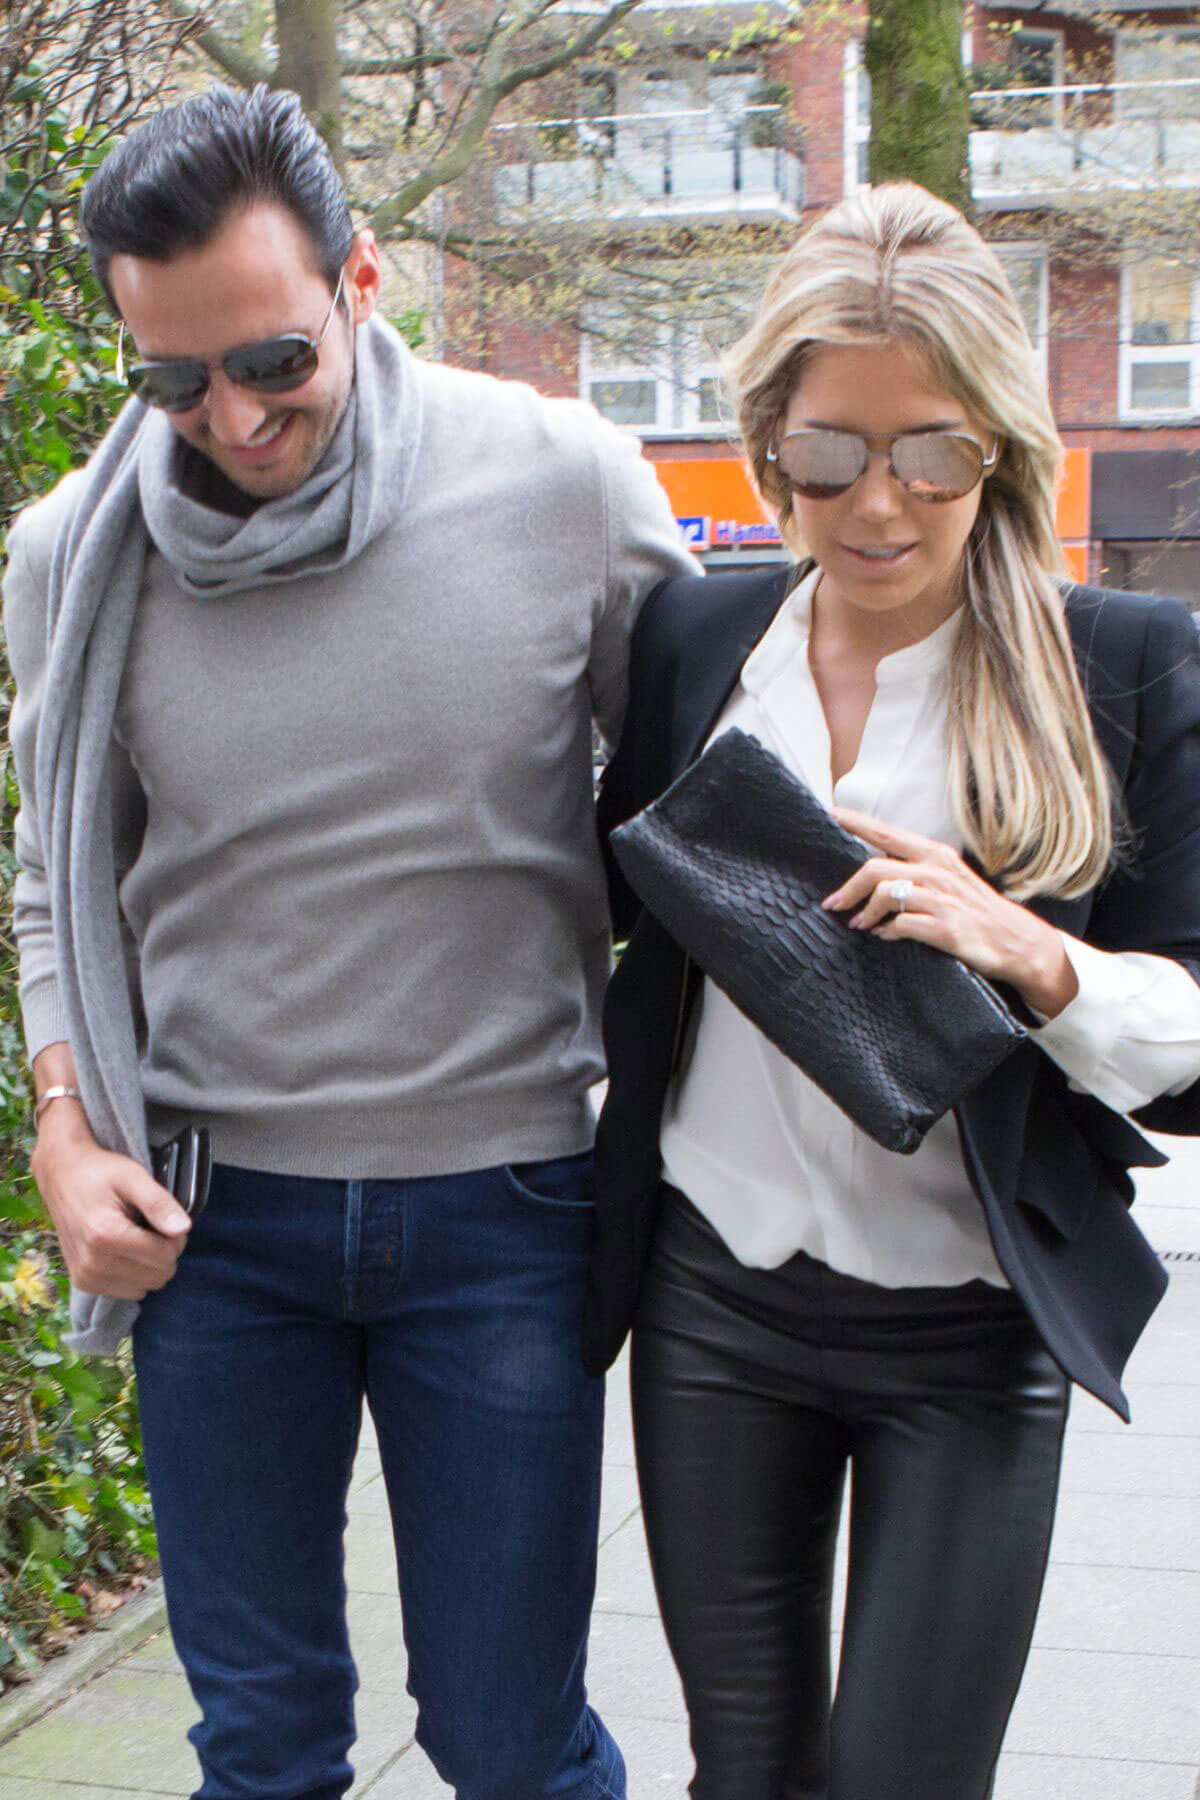 Sylvie Meis and Charbel Aouad After Engagement Night in Hamburg